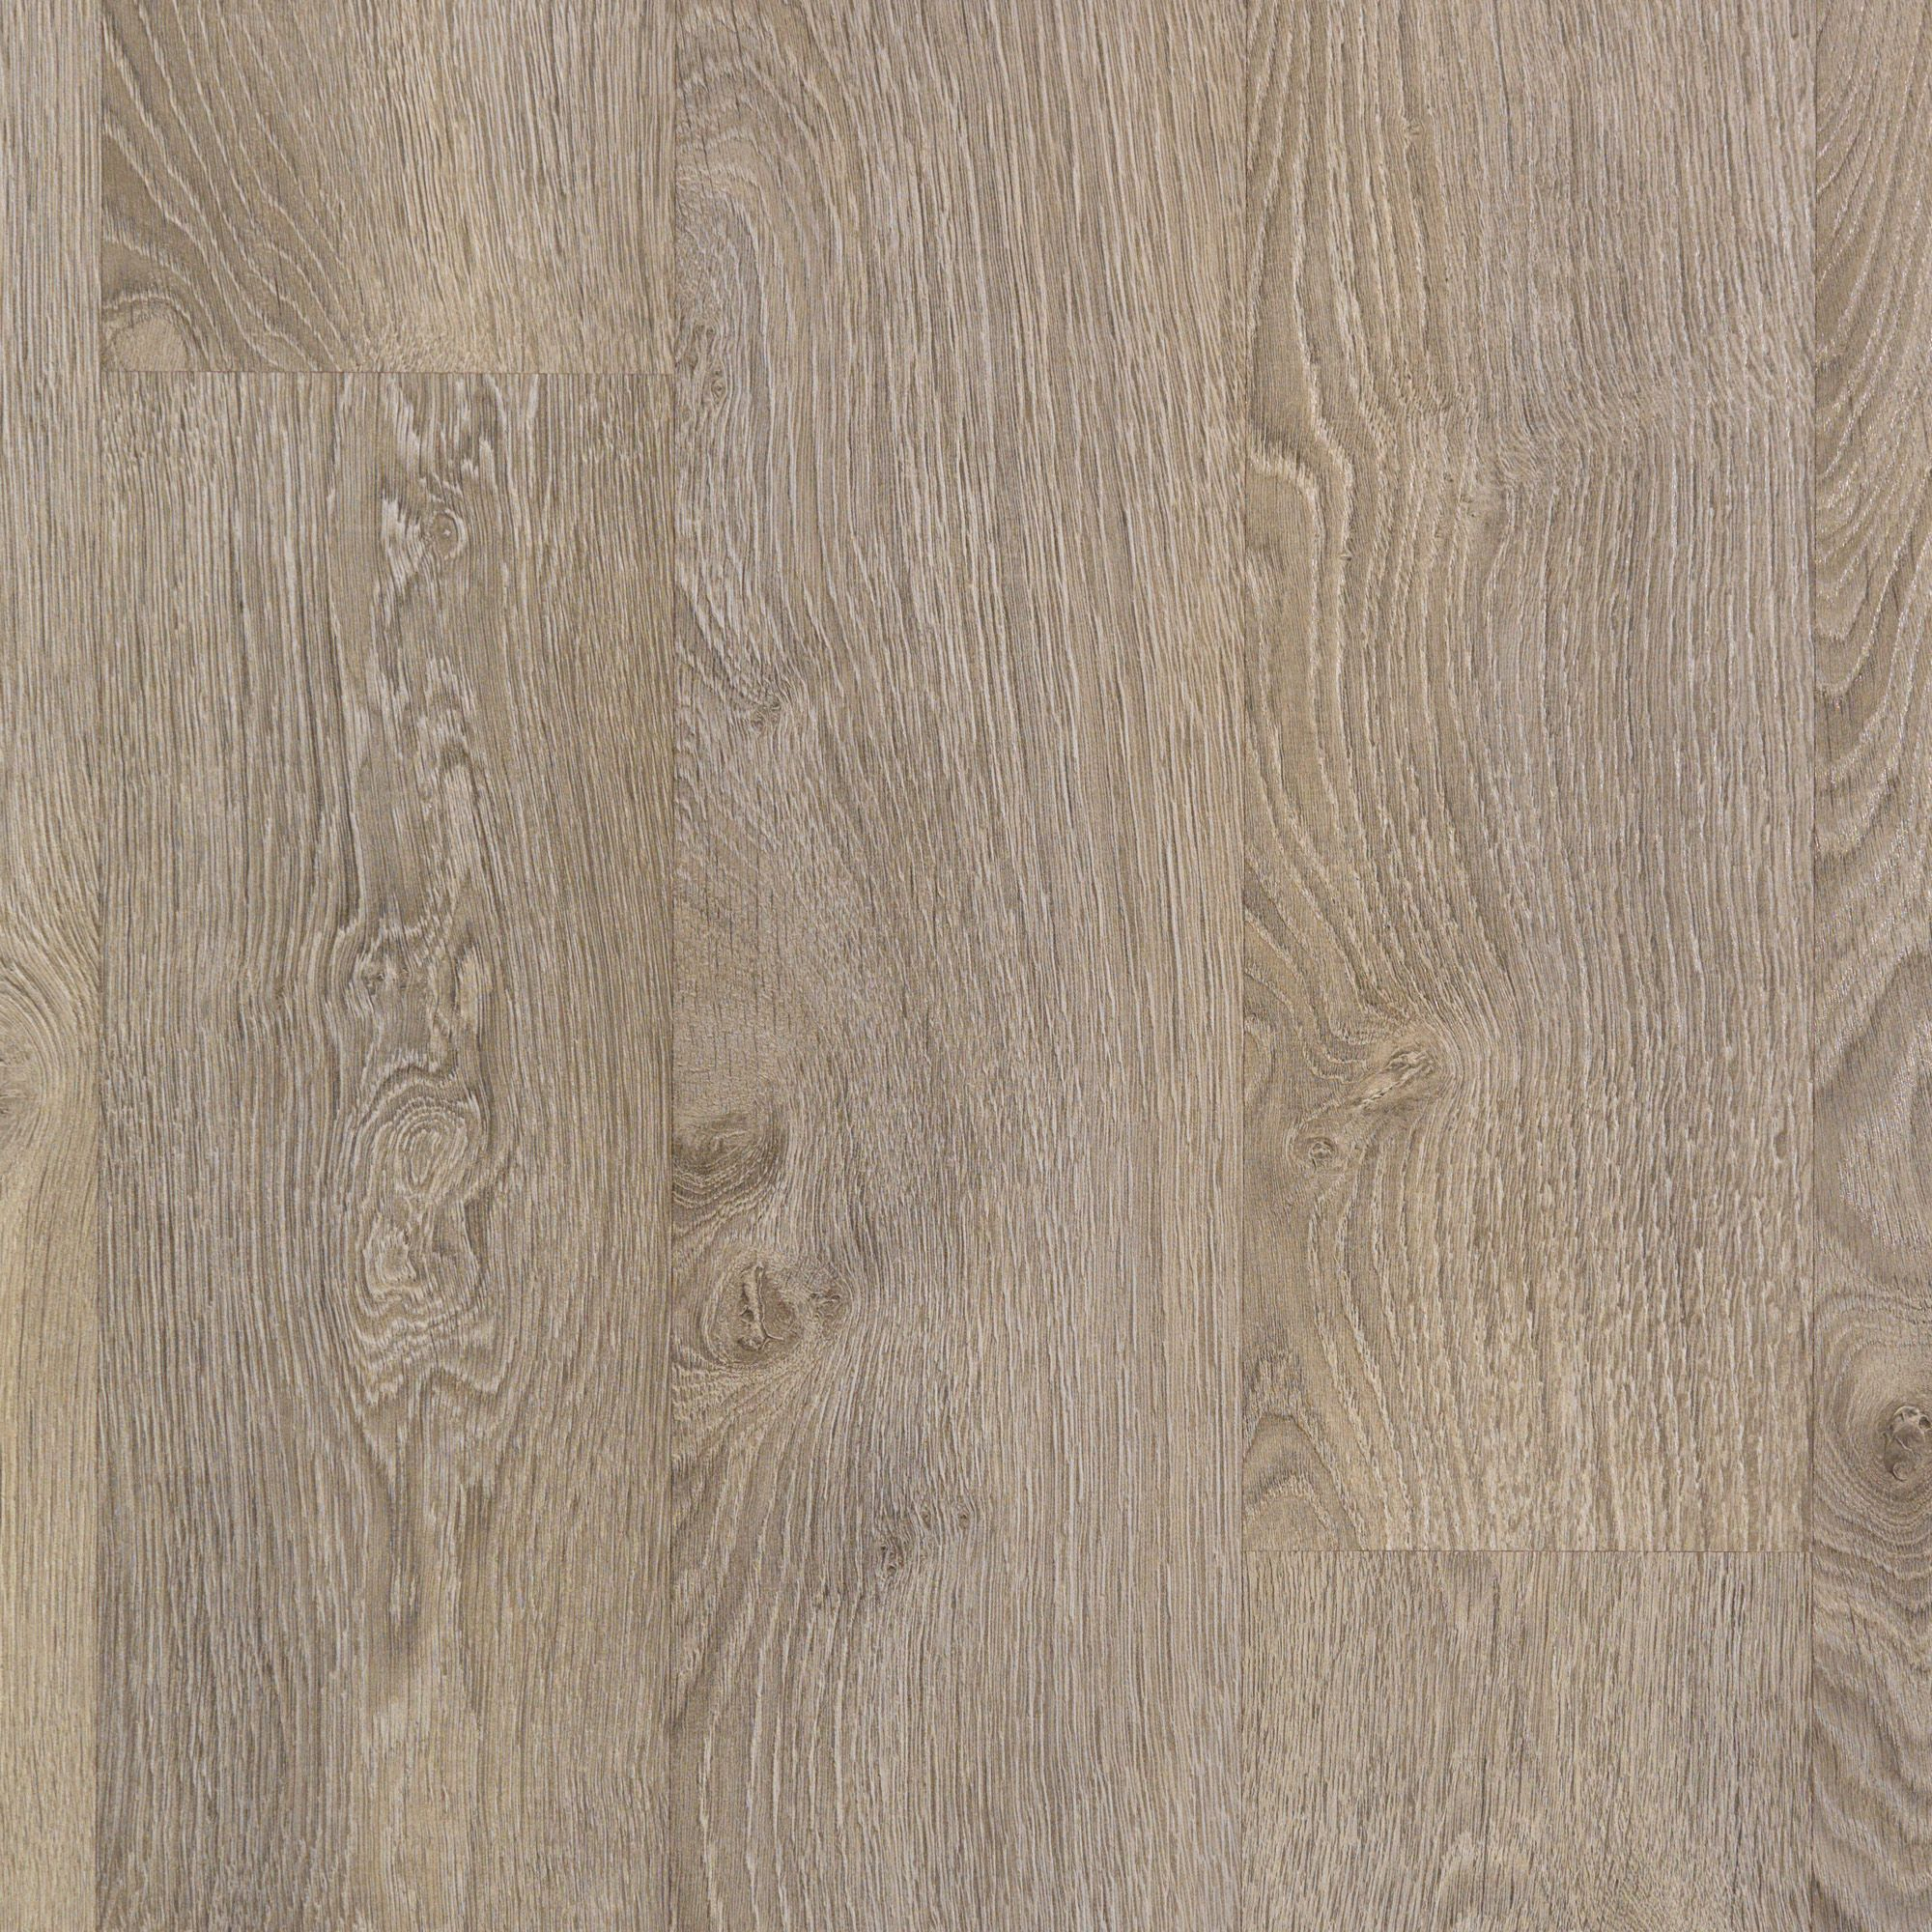 Calando Light Grey Oak Effect Laminate Flooring Sample Departments Diy At B Q